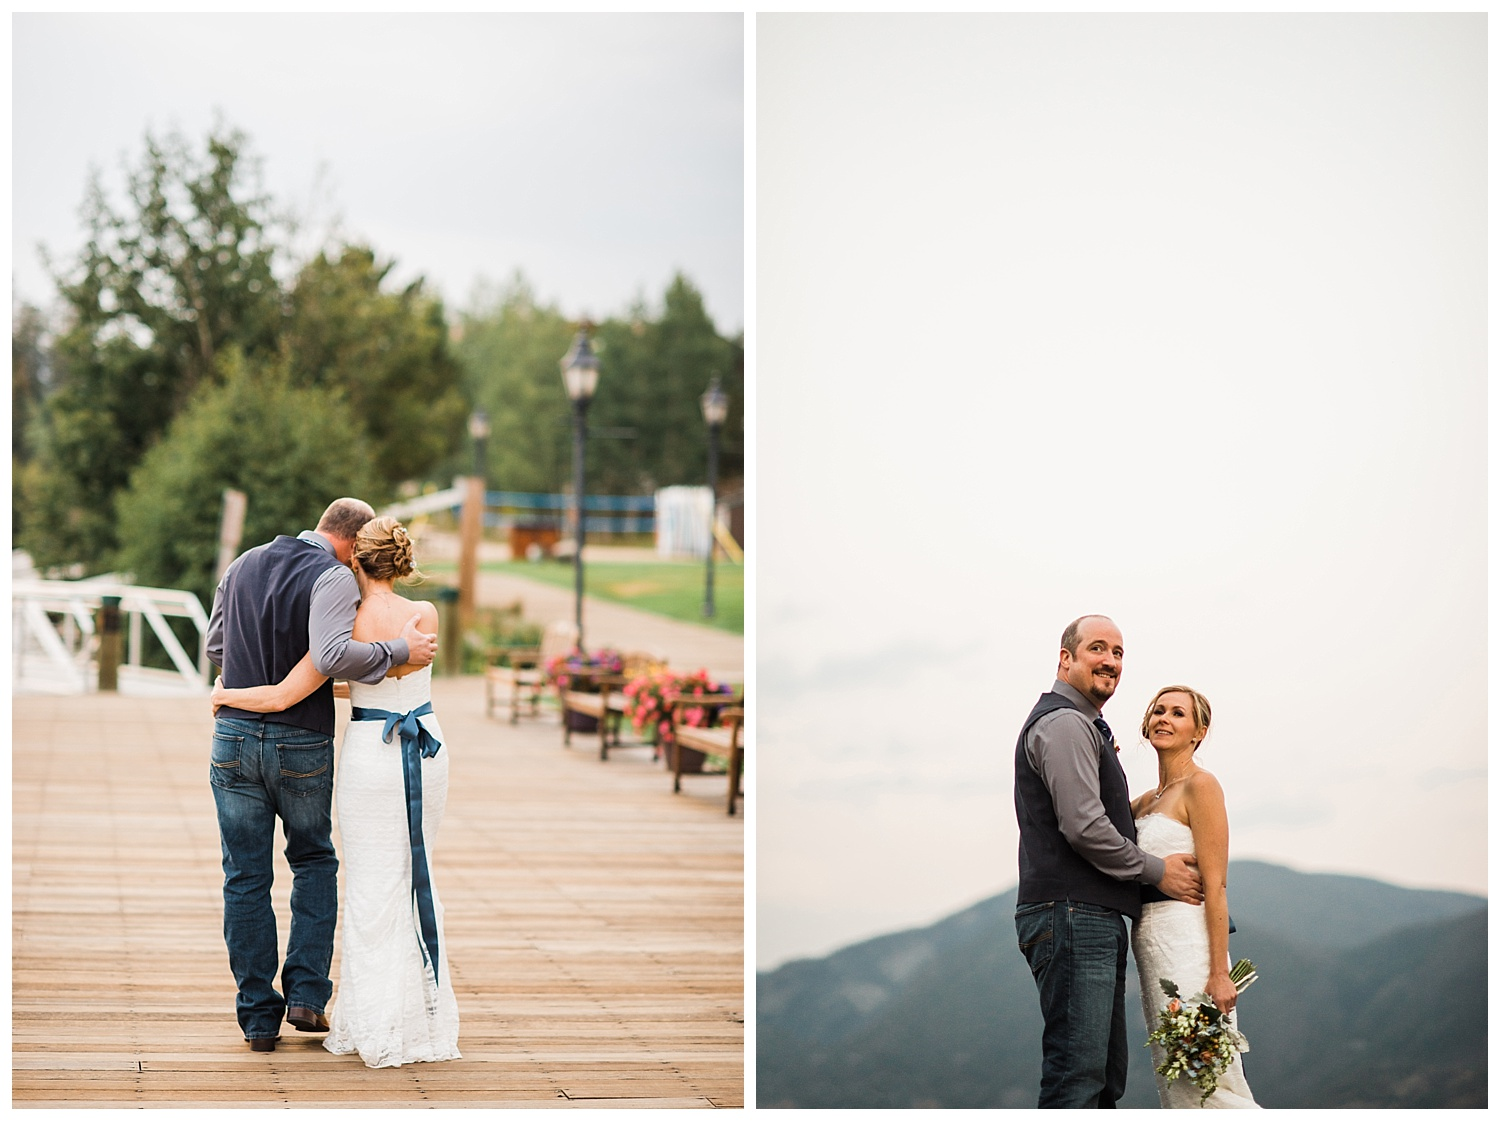 Western_Riviera_Wedding_Venue_Lake_Grandby_Colorado_Apollo_Fields_42.jpg